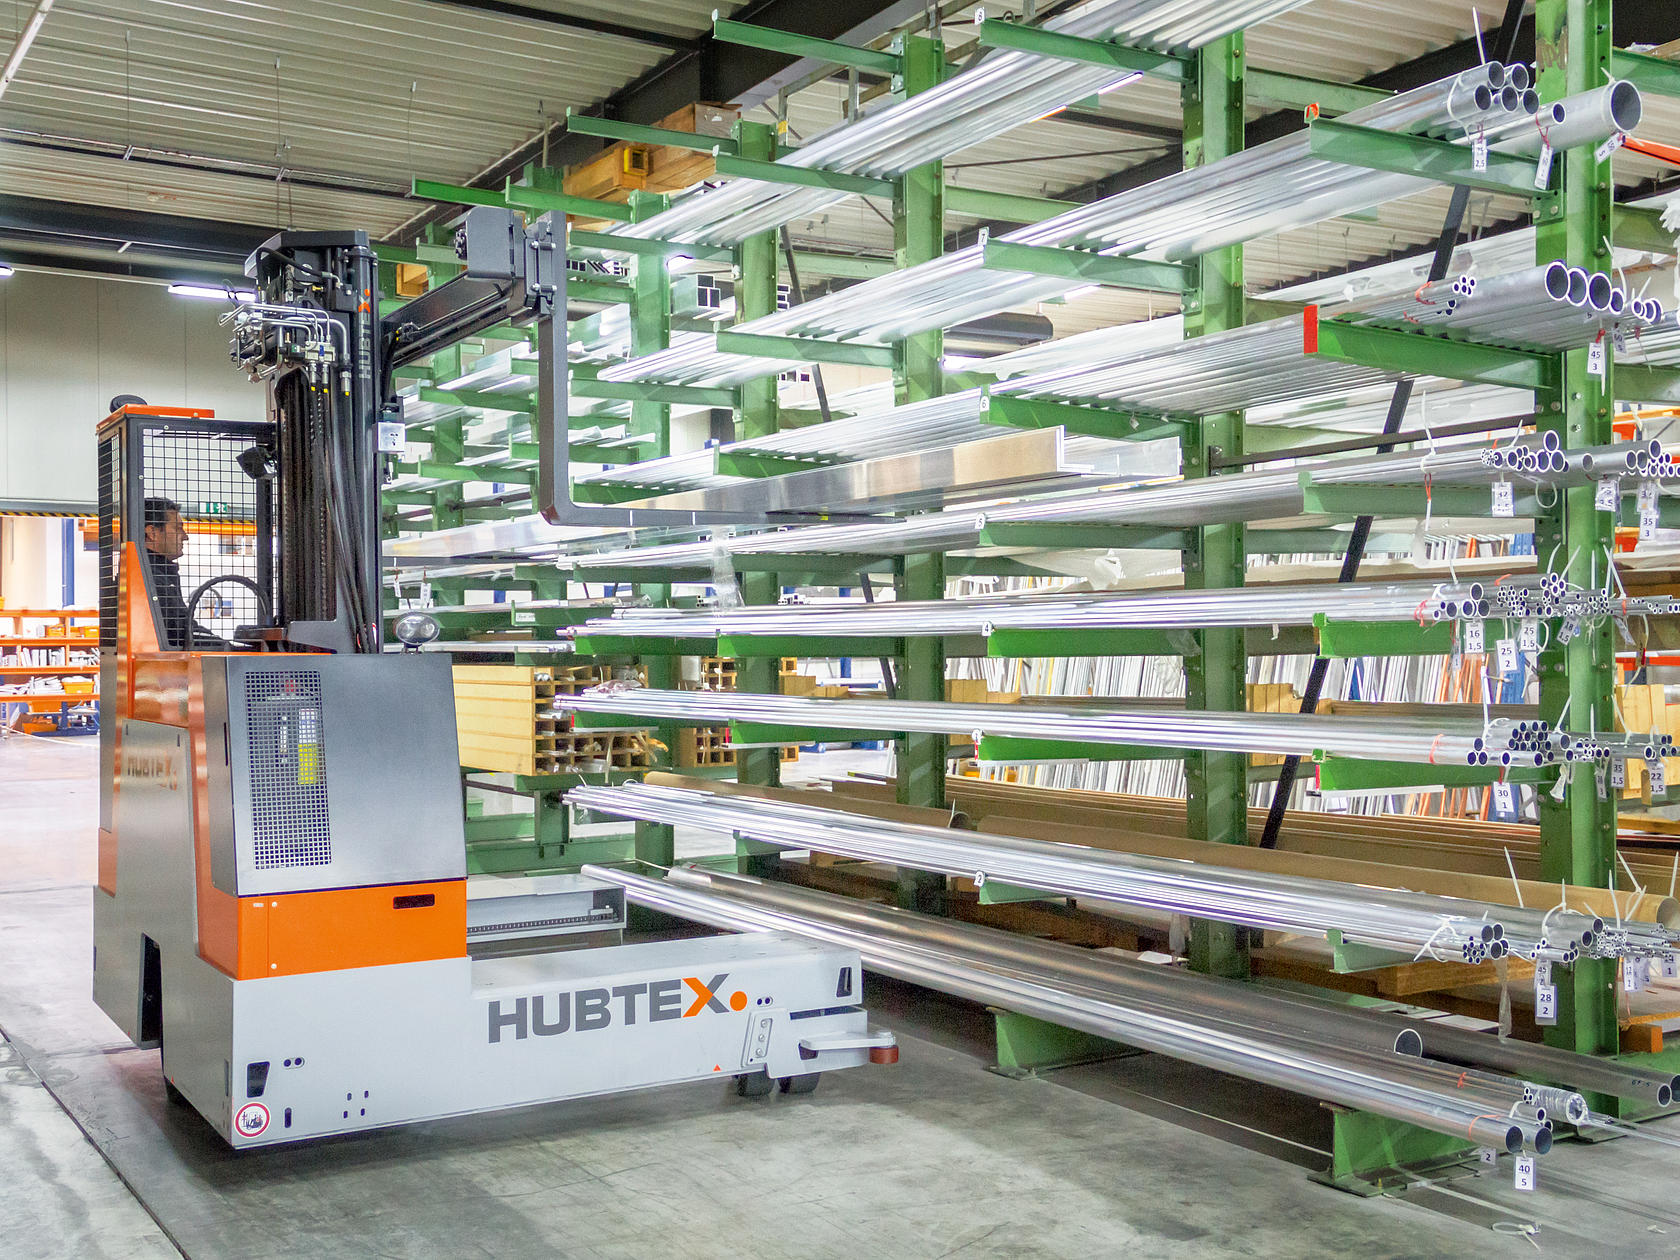 HUBTEX MaxX multidirectional sideloader handling aluminum internally